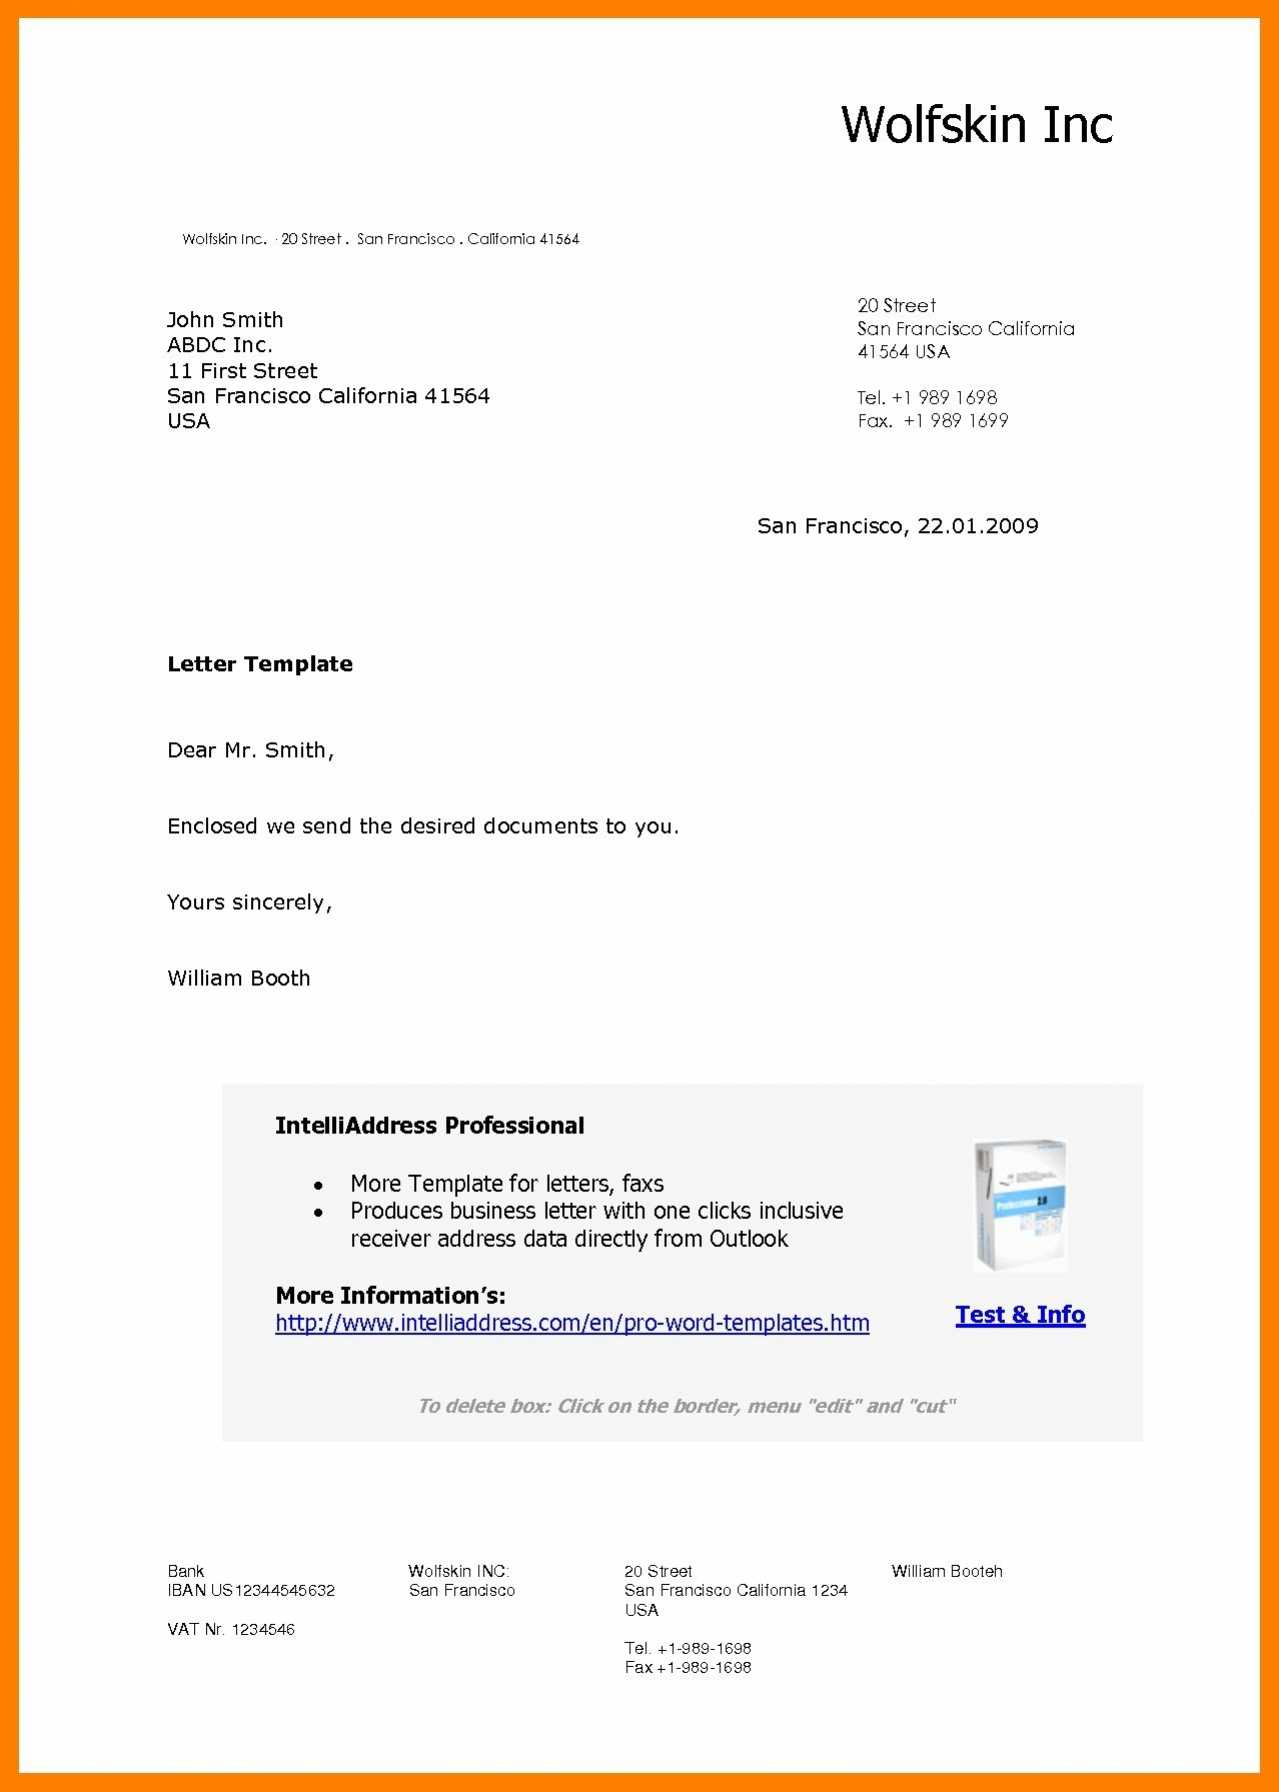 Letter to Santa Template Word - Beautiful Free Cover Letter Template Word